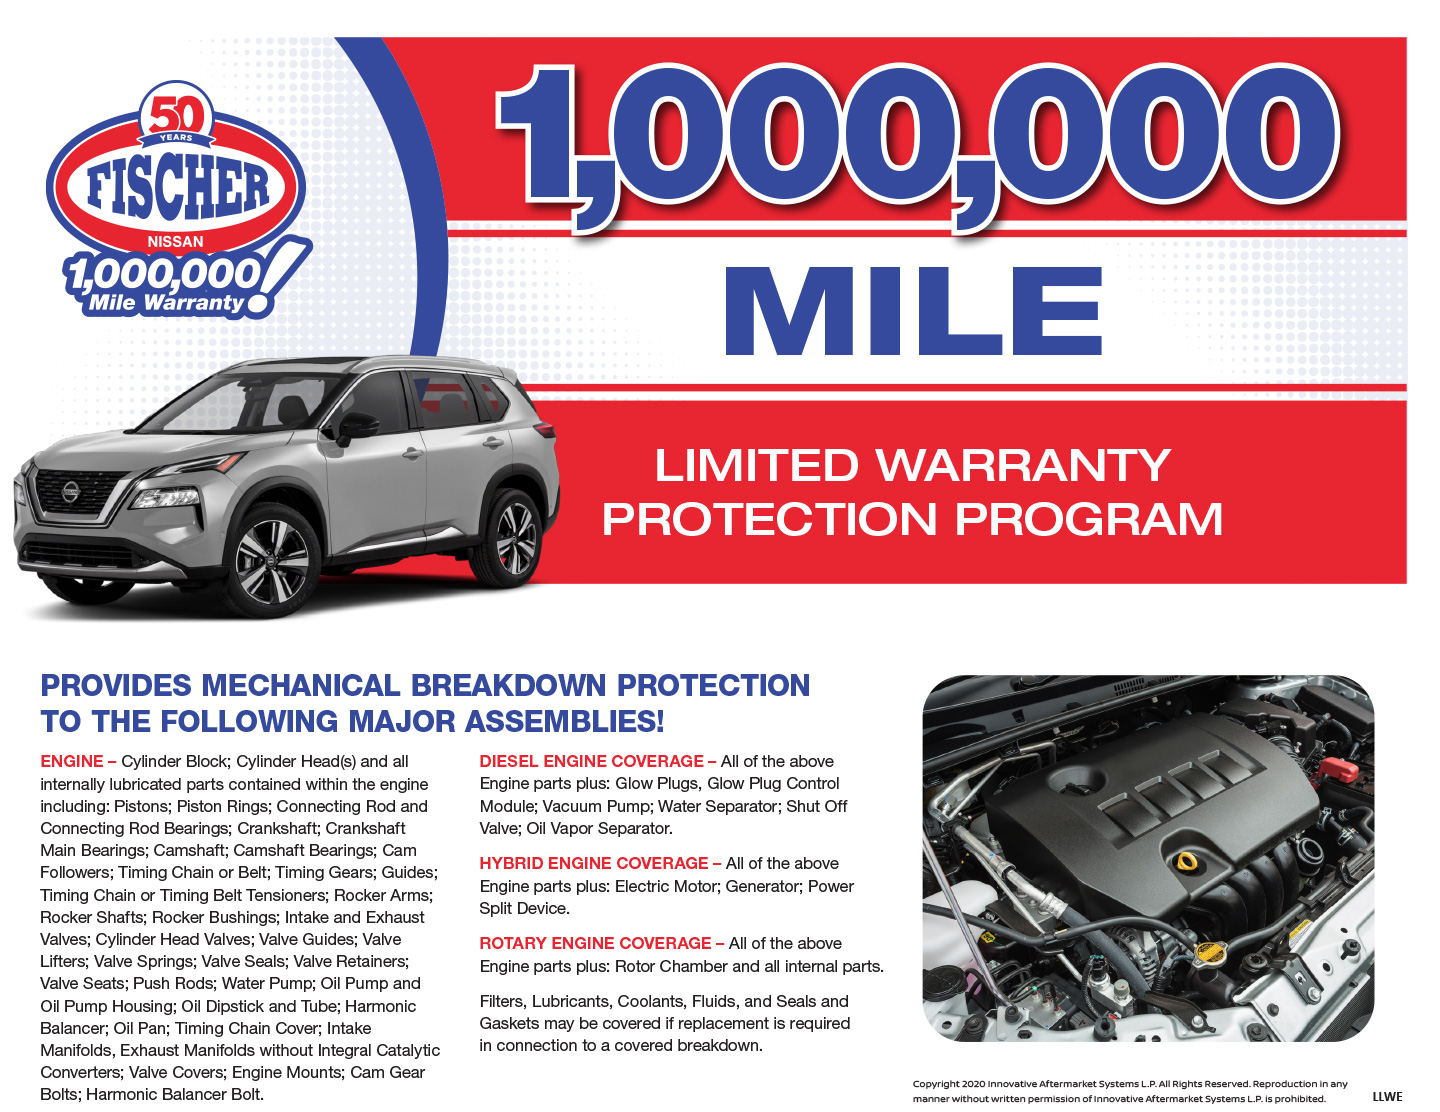 Pat Fischer Nissan is Home of the Million Mile Warranty